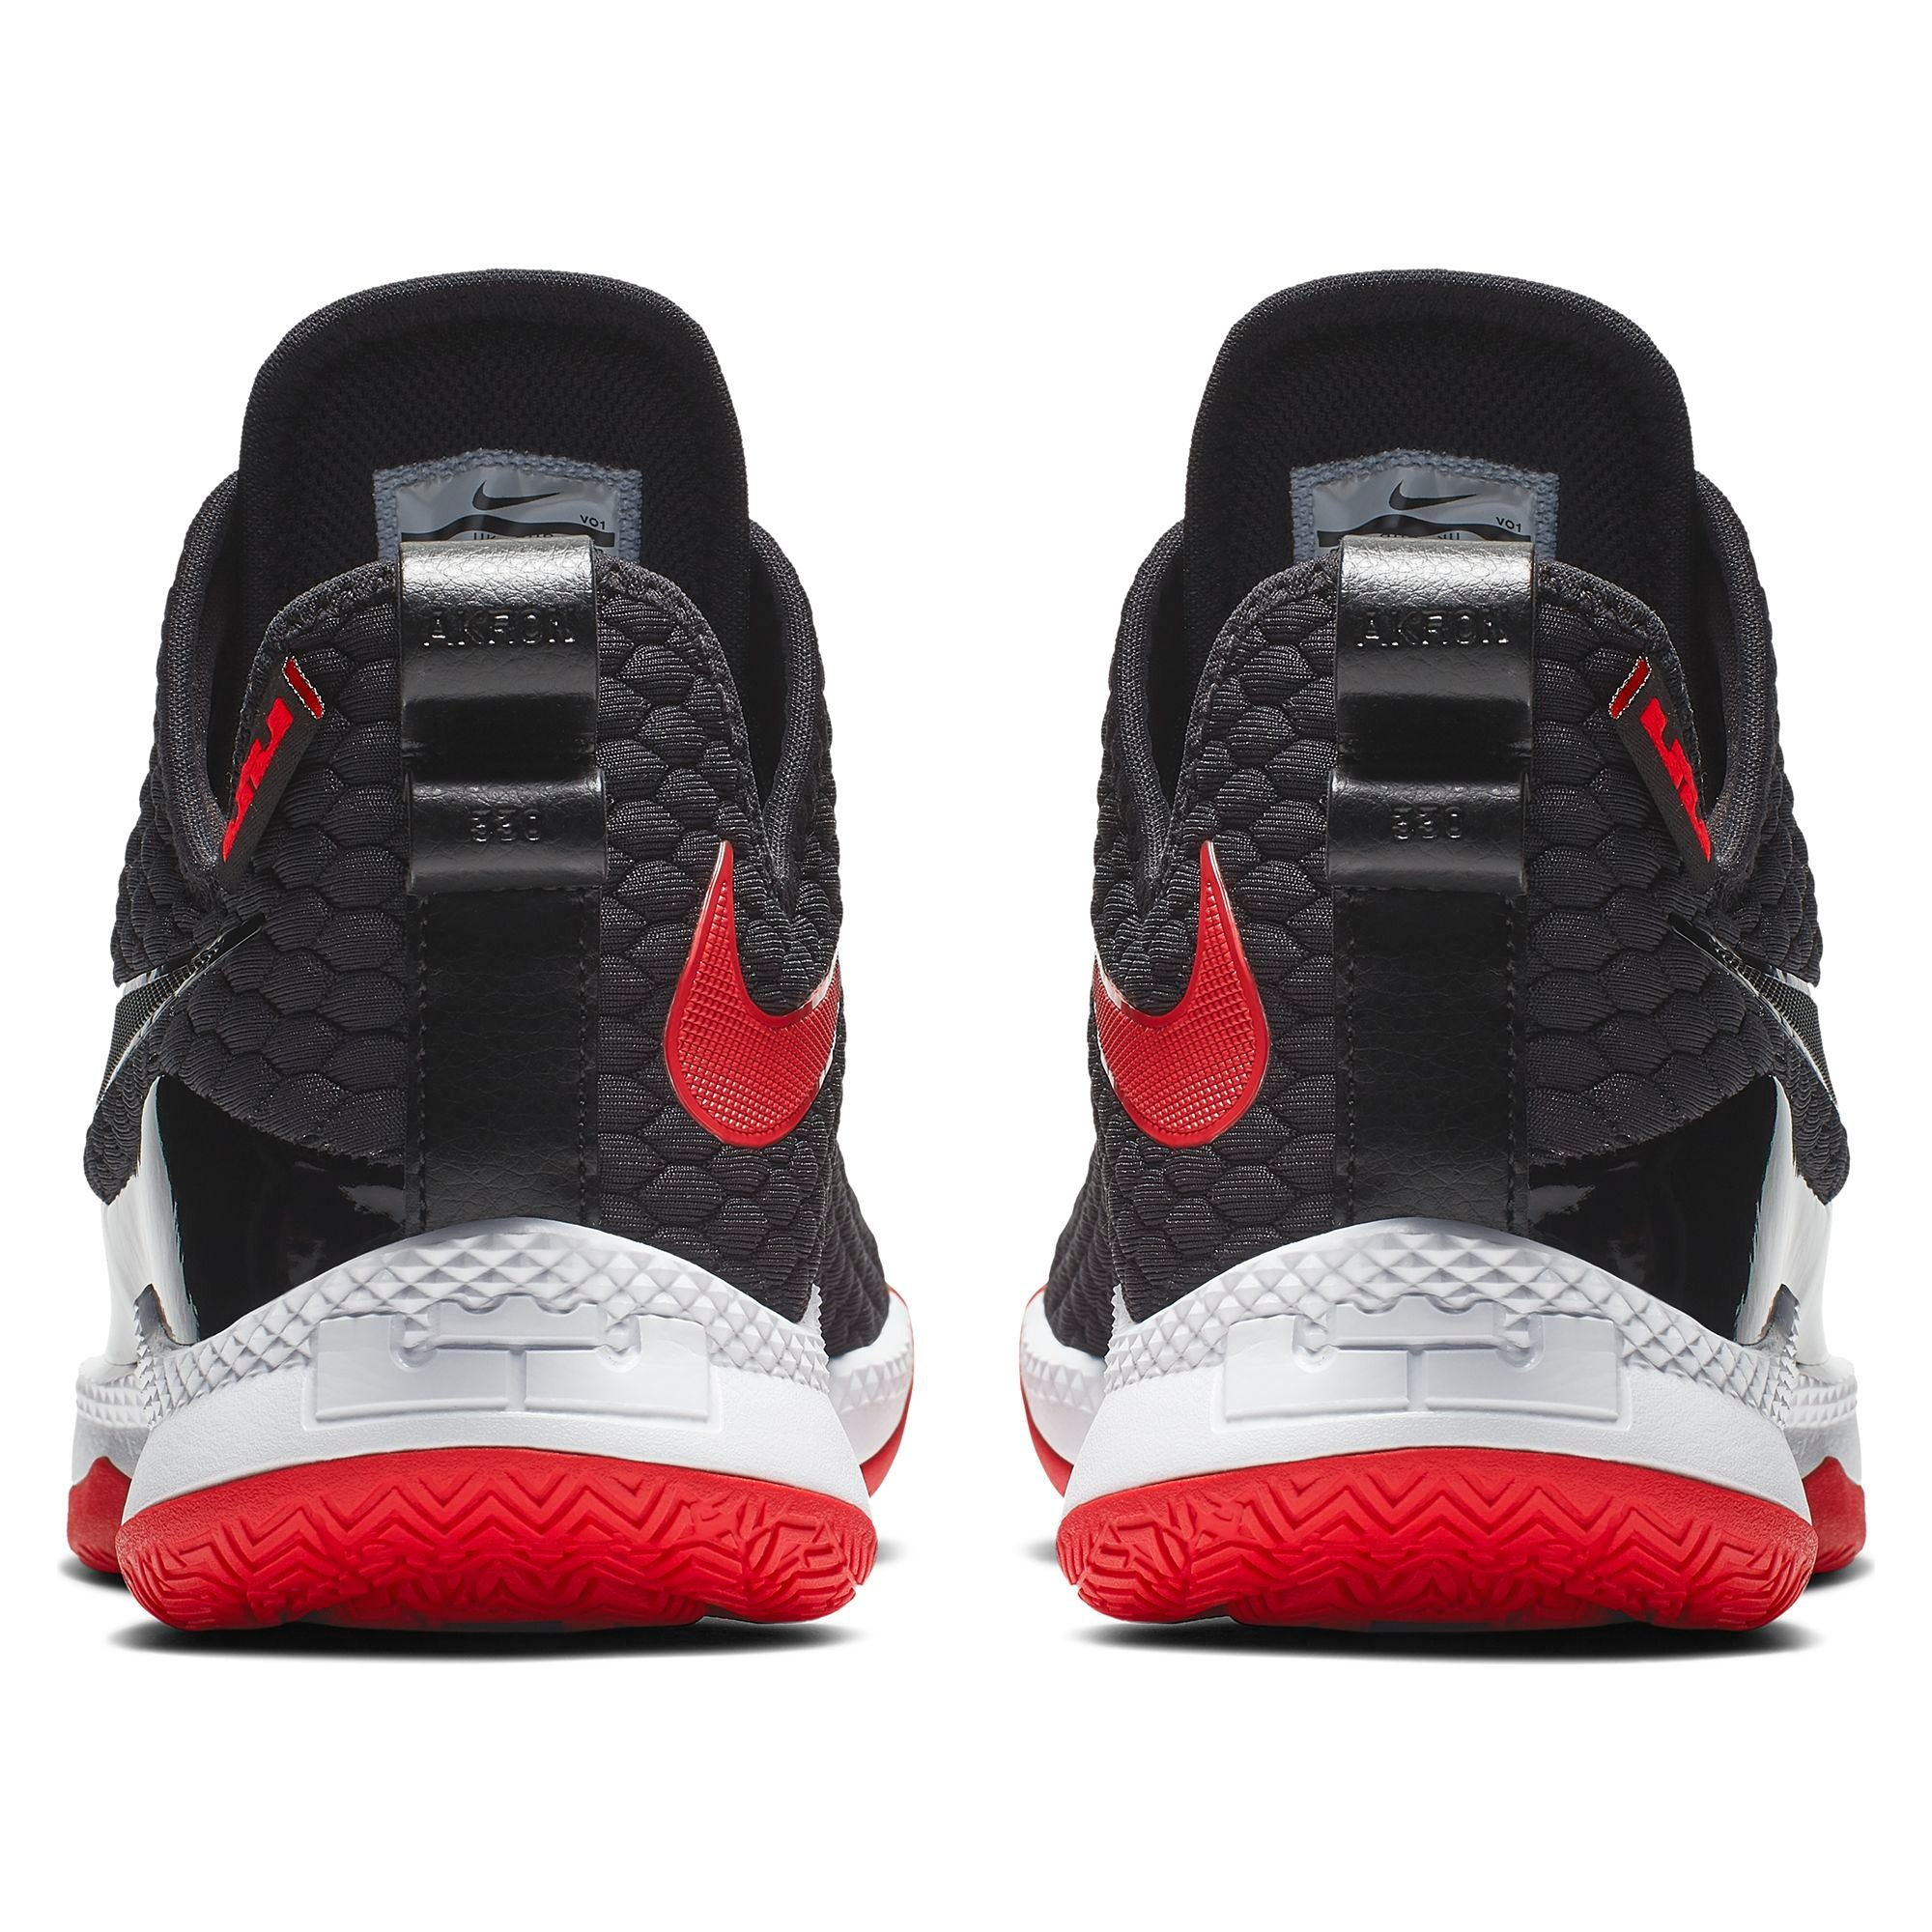 Nike Lebron Witness III PRM Basketball Boot/Shoe - Black/White/University Red